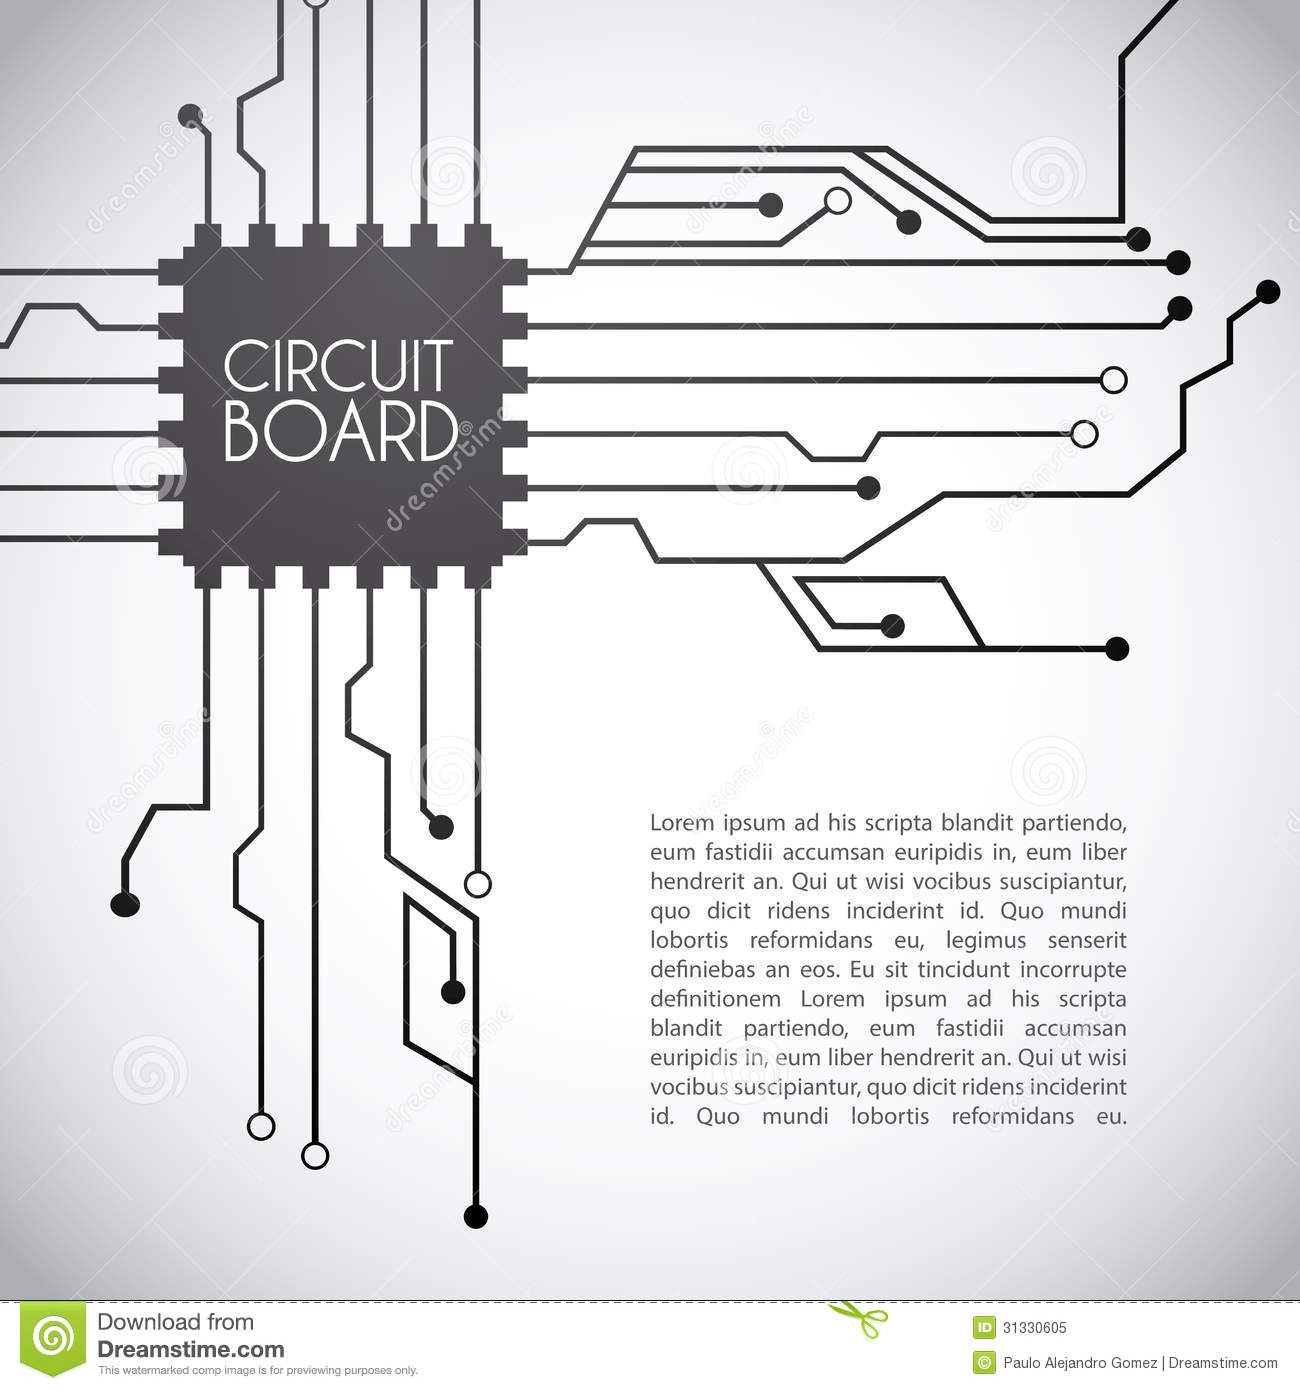 Images Of Free Illustration Production Circuit Calto Board Cpu Royalty Stock Photo Image 24475895 Design